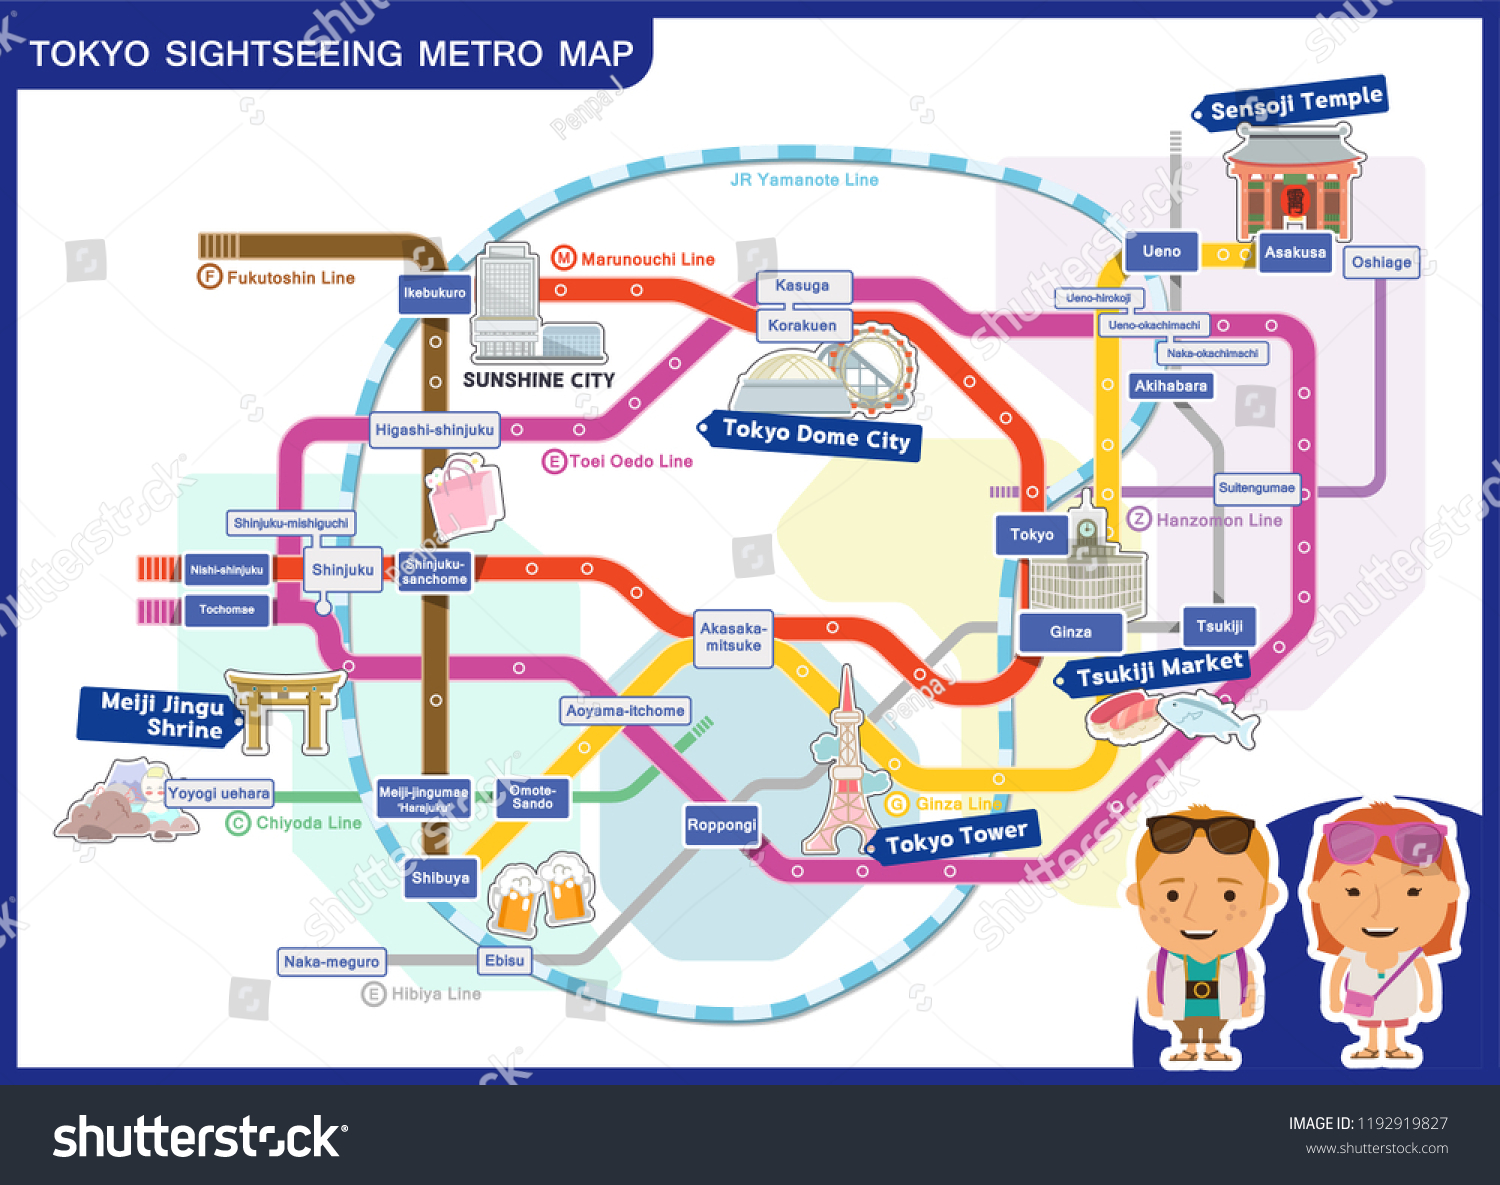 Aoyama Itchome On Subway Map.Tokyo Metro Sightseeing Map Travel Vector Stock Vector Royalty Free